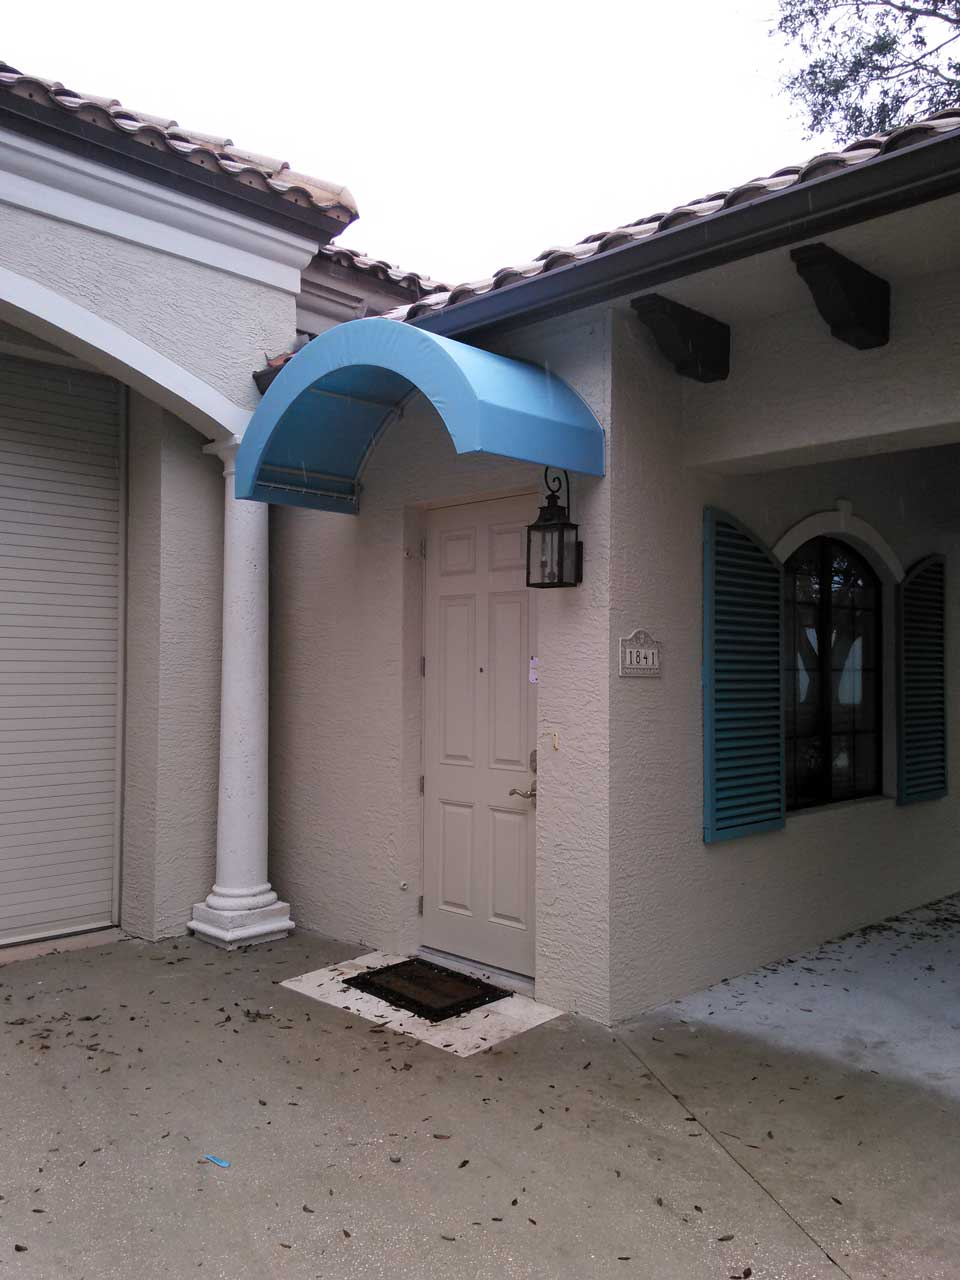 Entryway awning